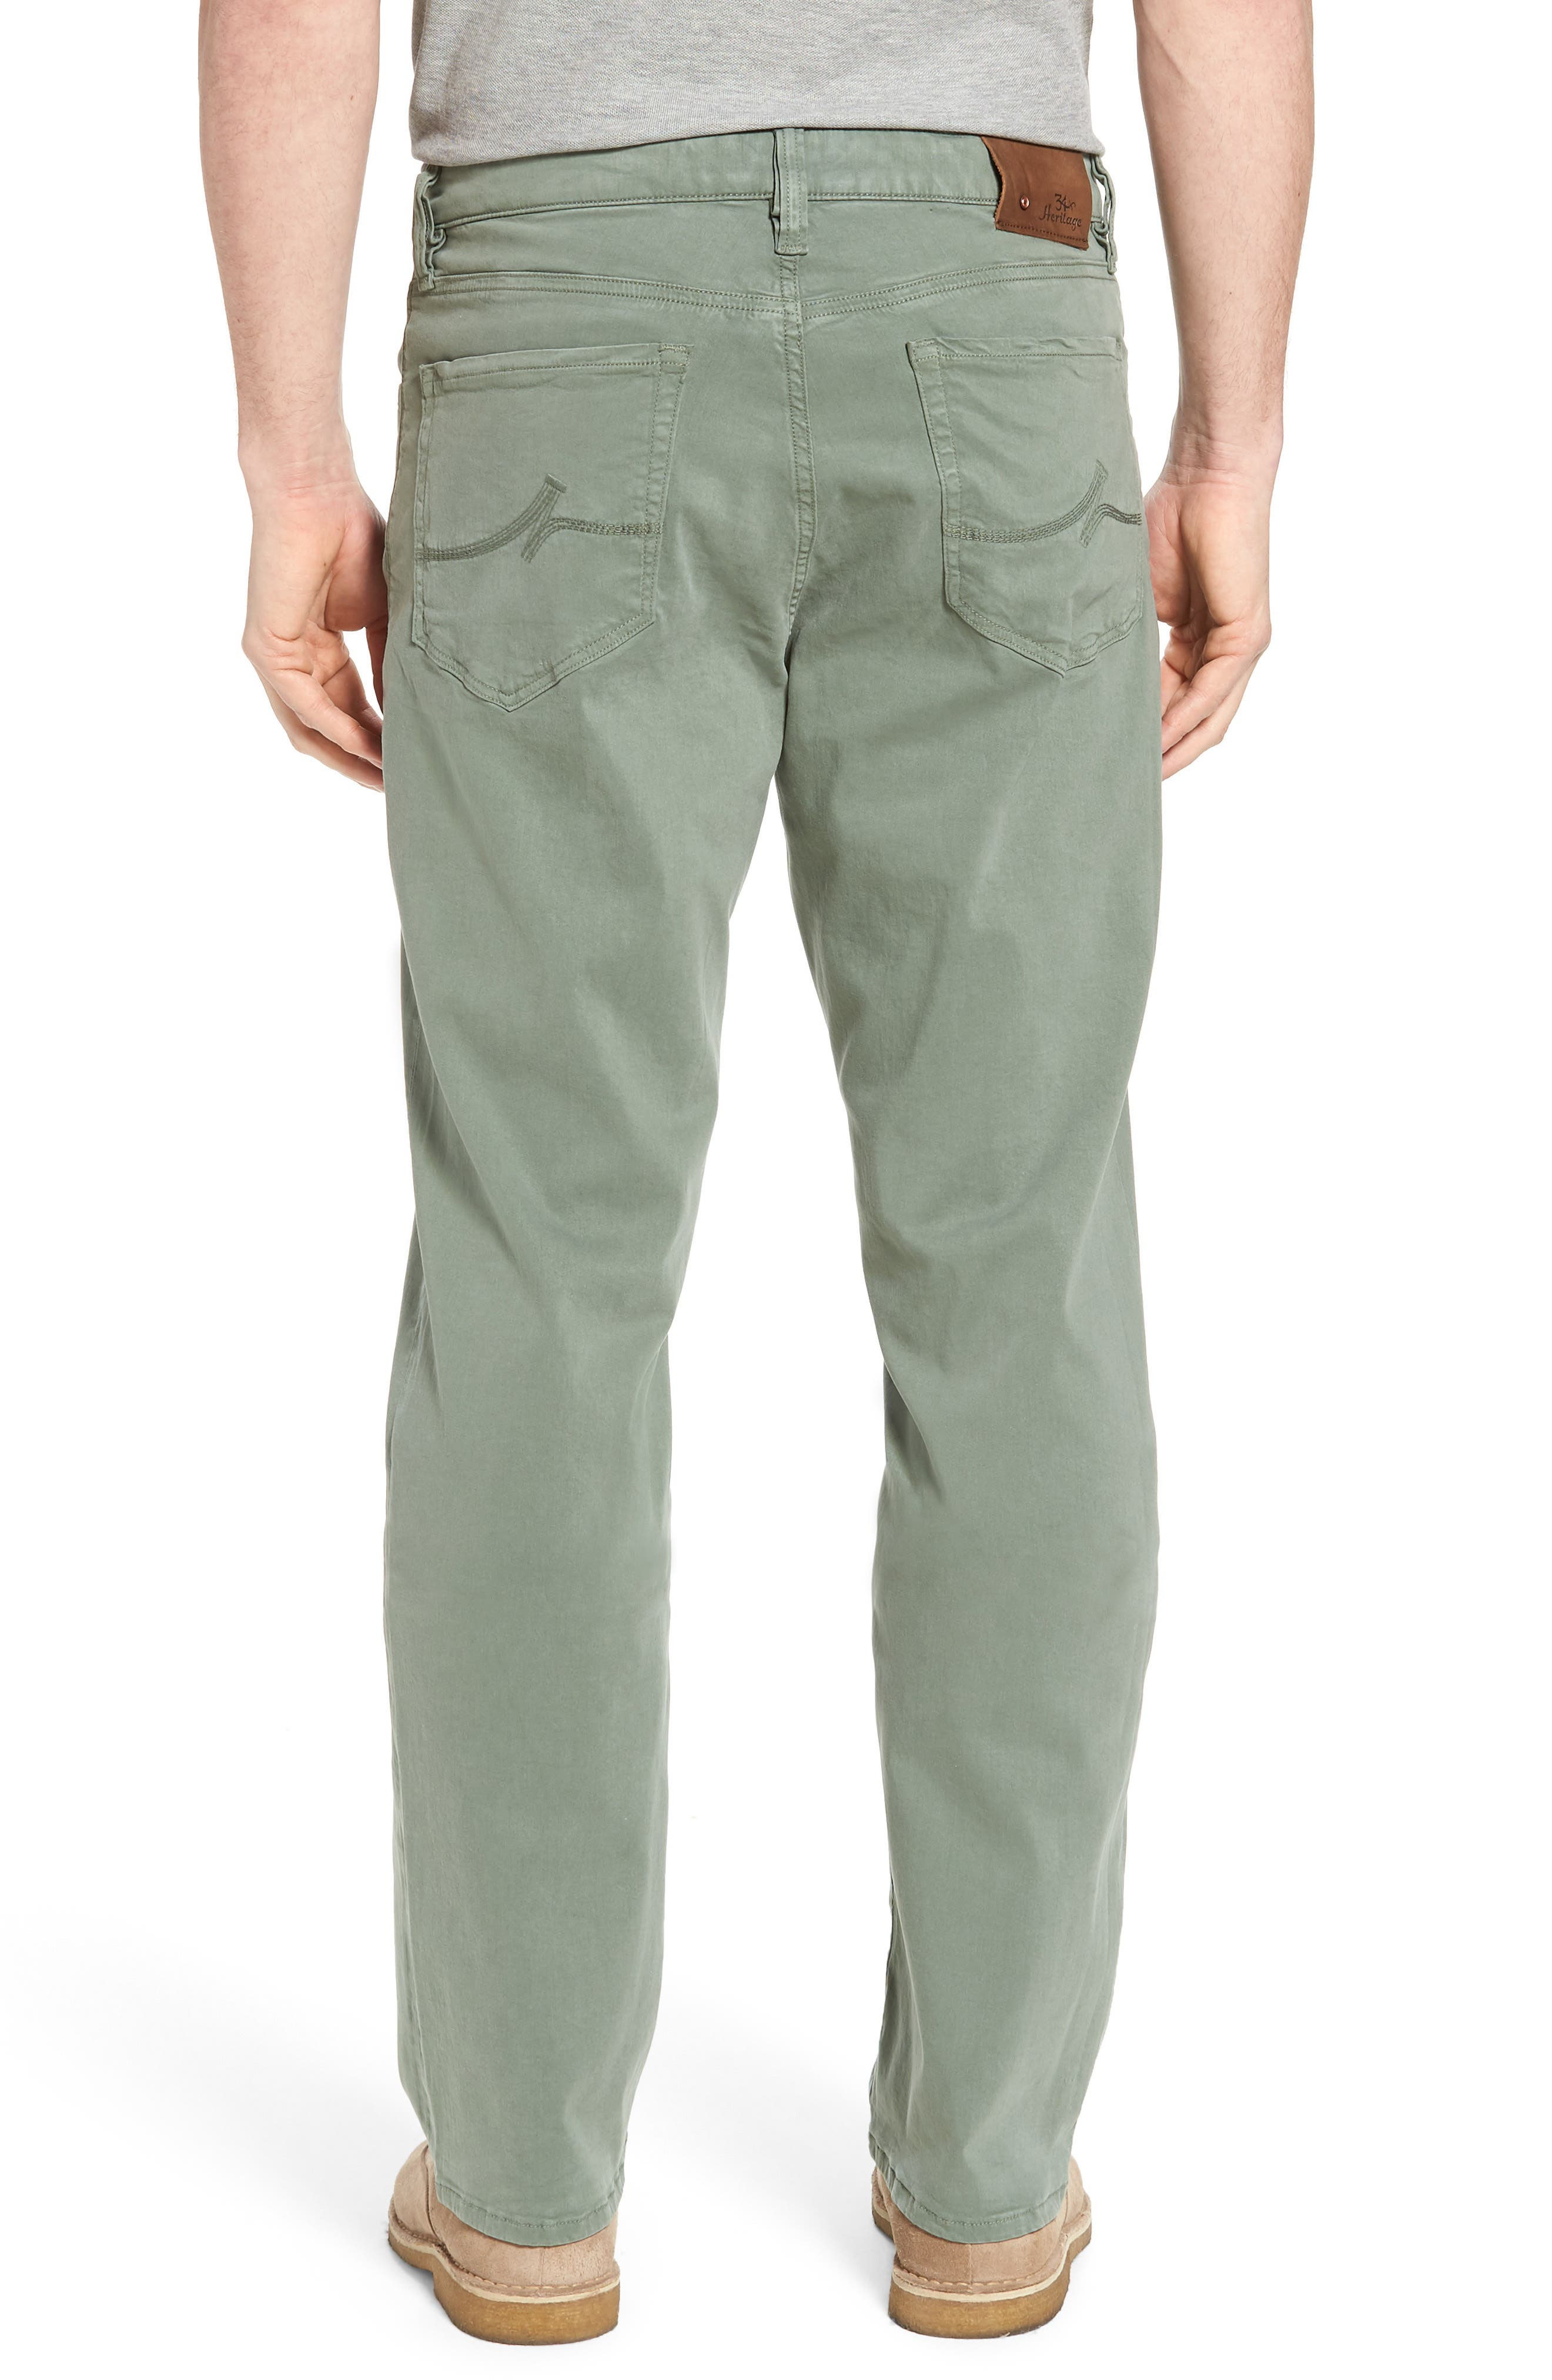 Charisma Relaxed Fit Twill Pants,                             Alternate thumbnail 2, color,                             Moss Twill